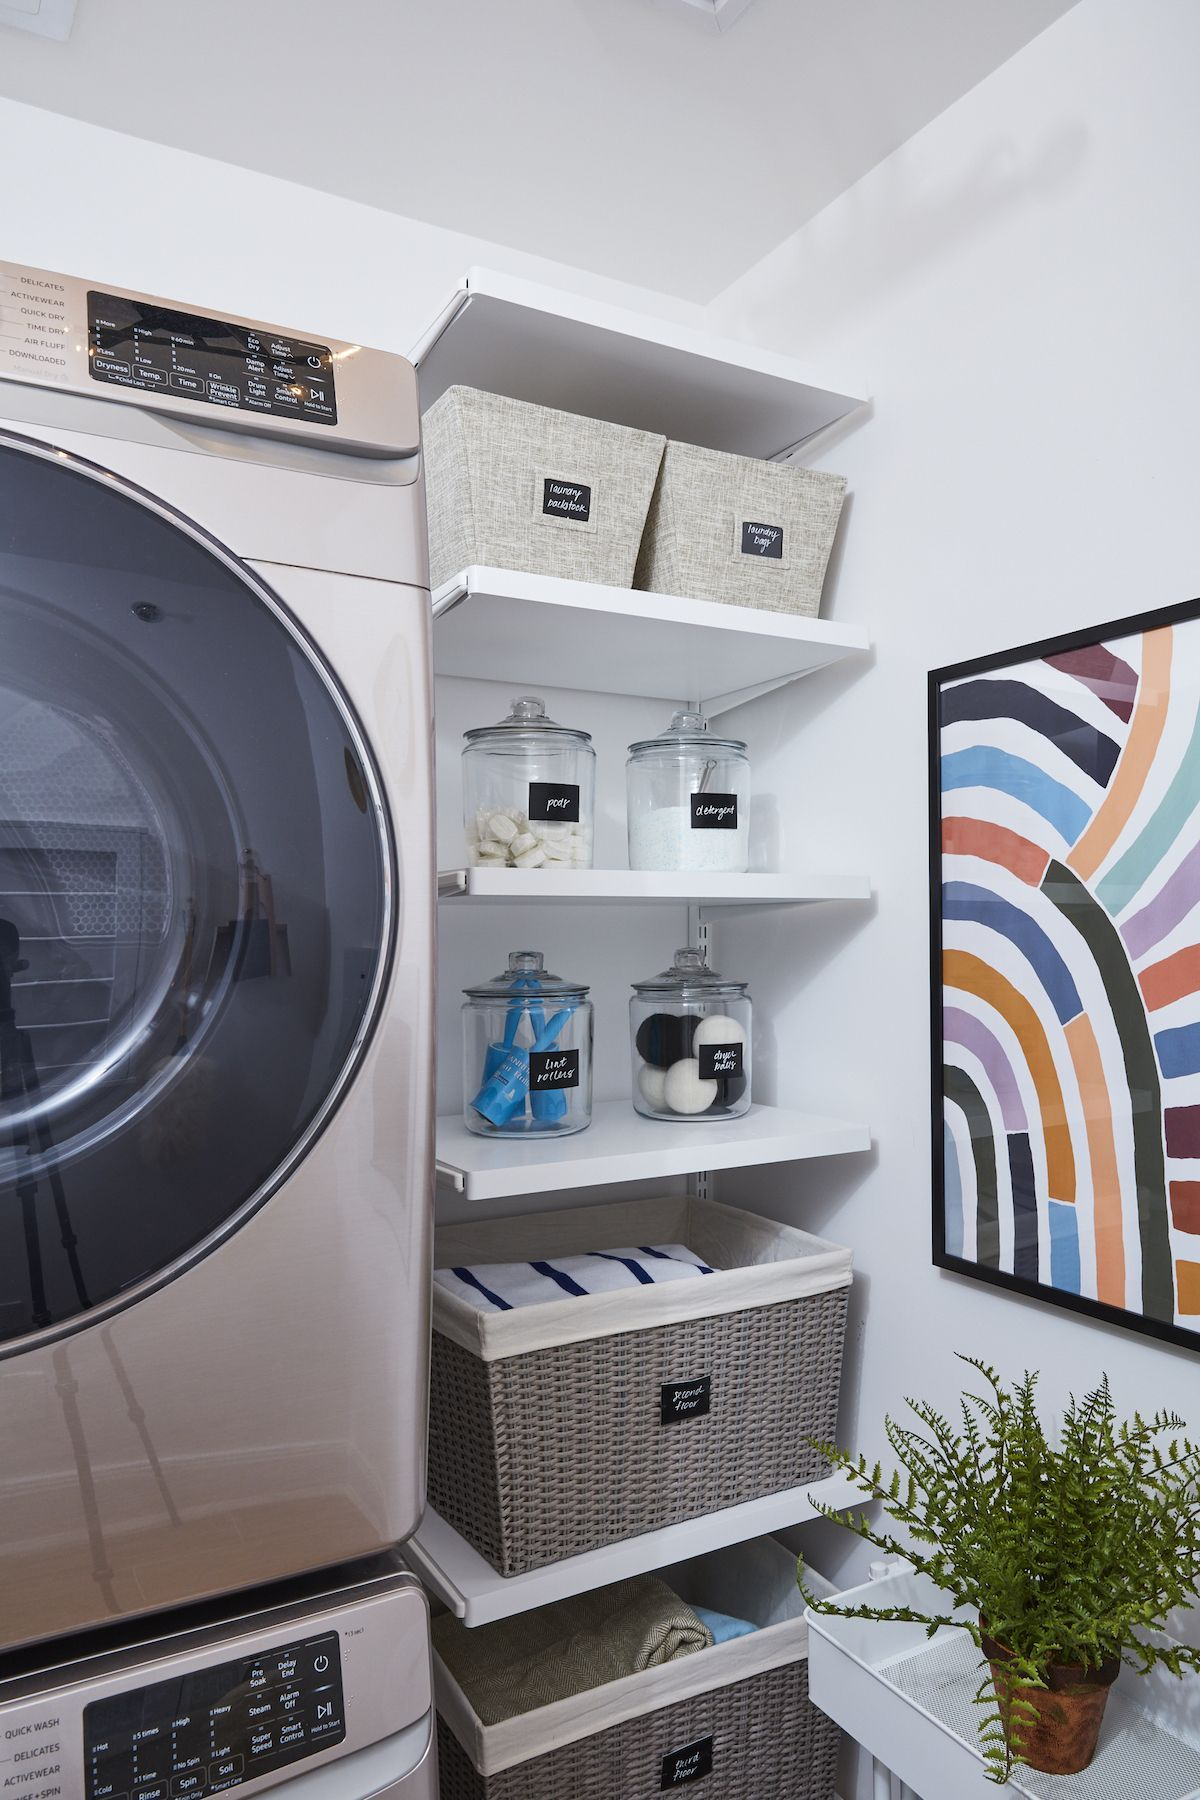 inspired 17 small laundry room organization ideas inspired on effectively laundry room decoration ideas easy ideas to inspire you id=48839